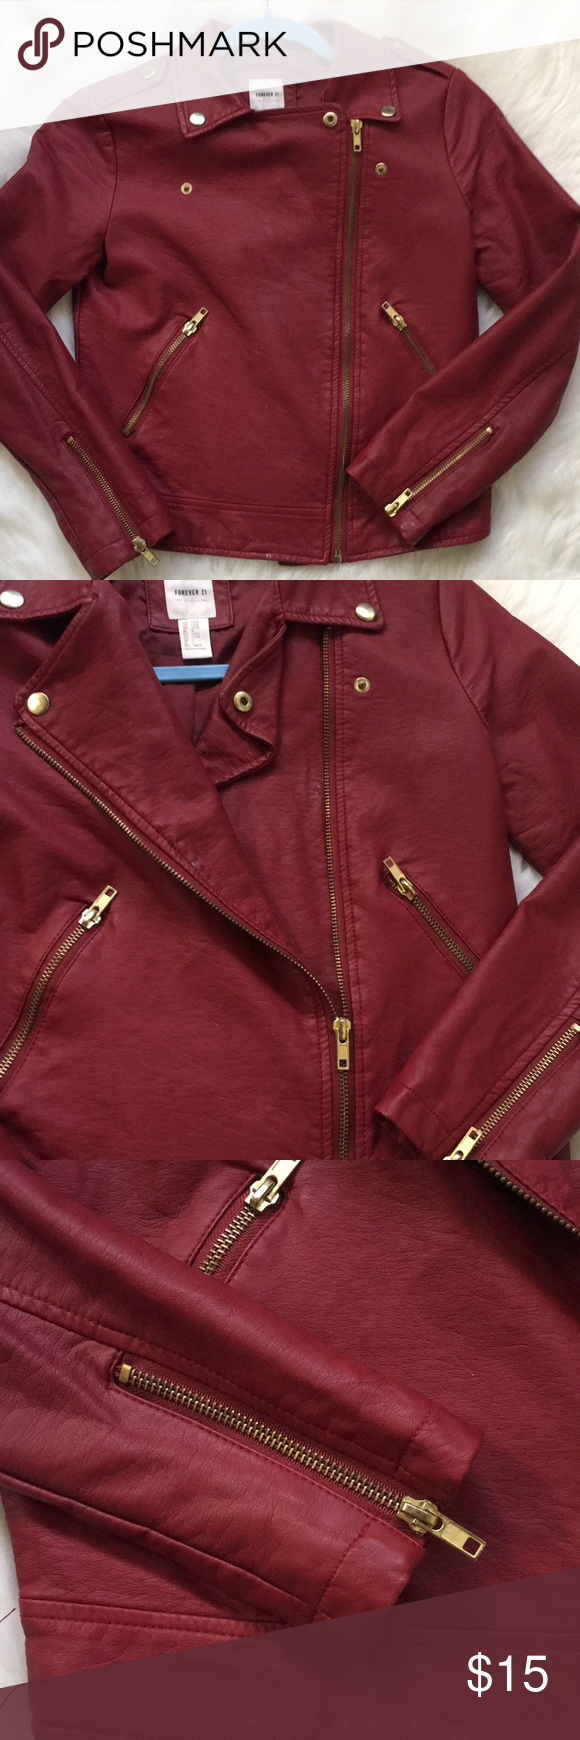 Faux leather jacket Maroon red. Zipper down. Few minor